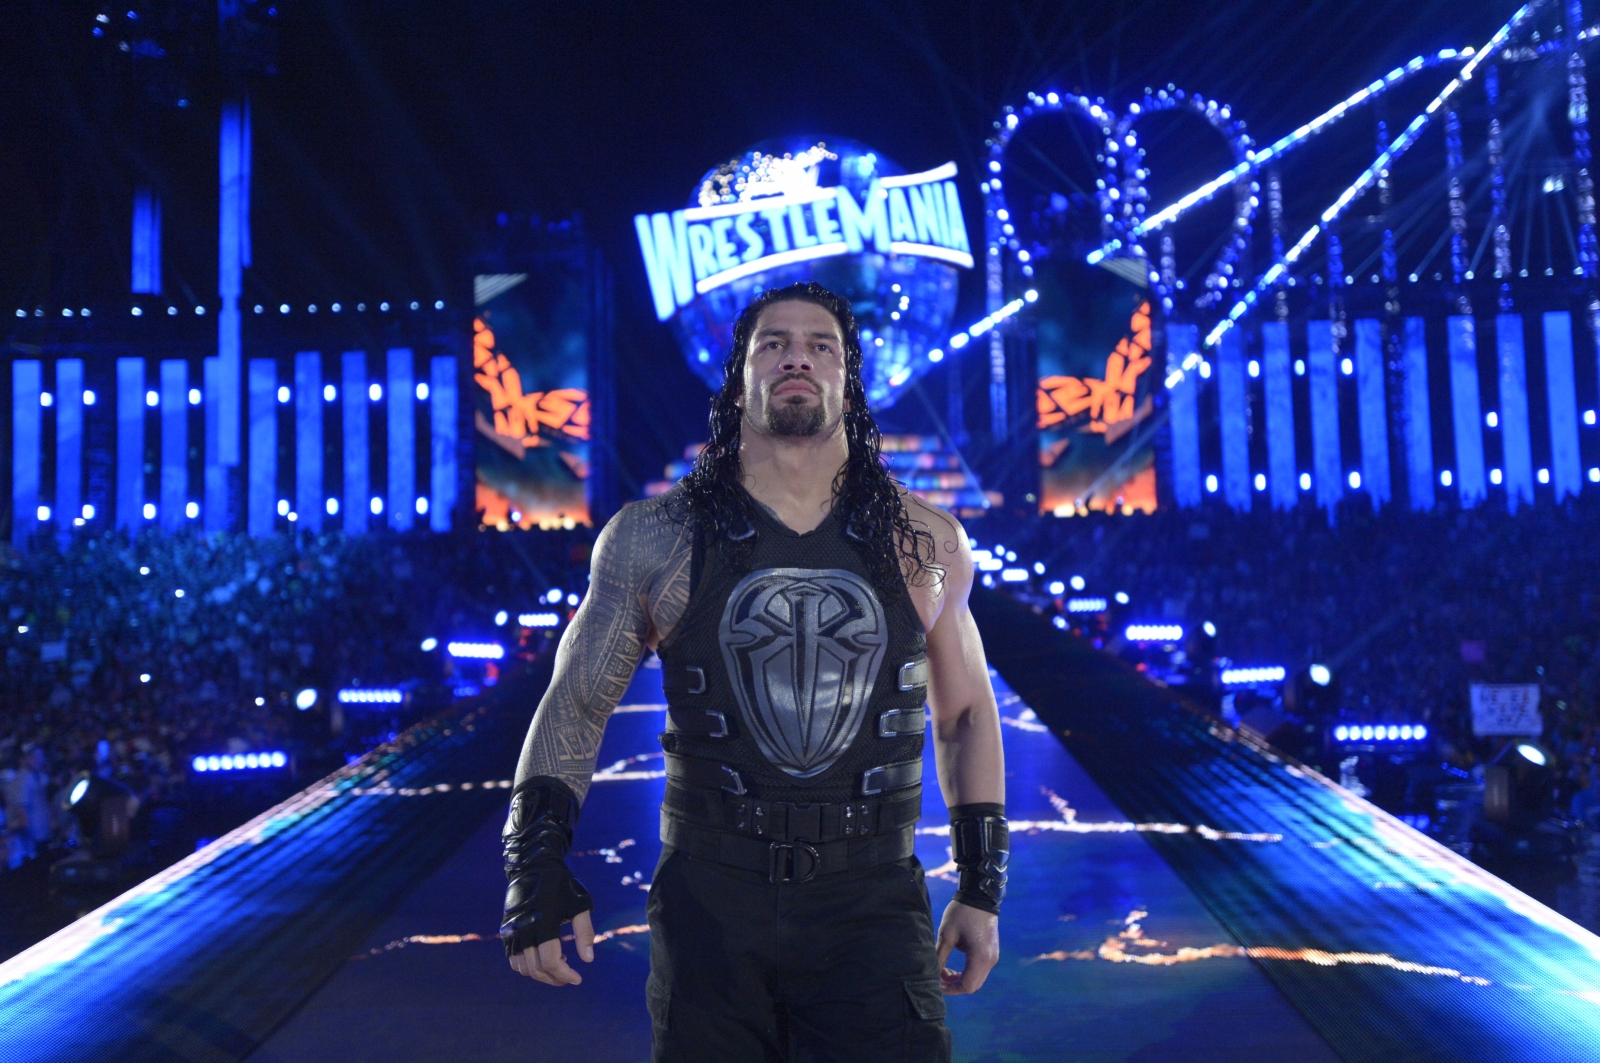 roman reigns shoots on upset wwe fans over his big push